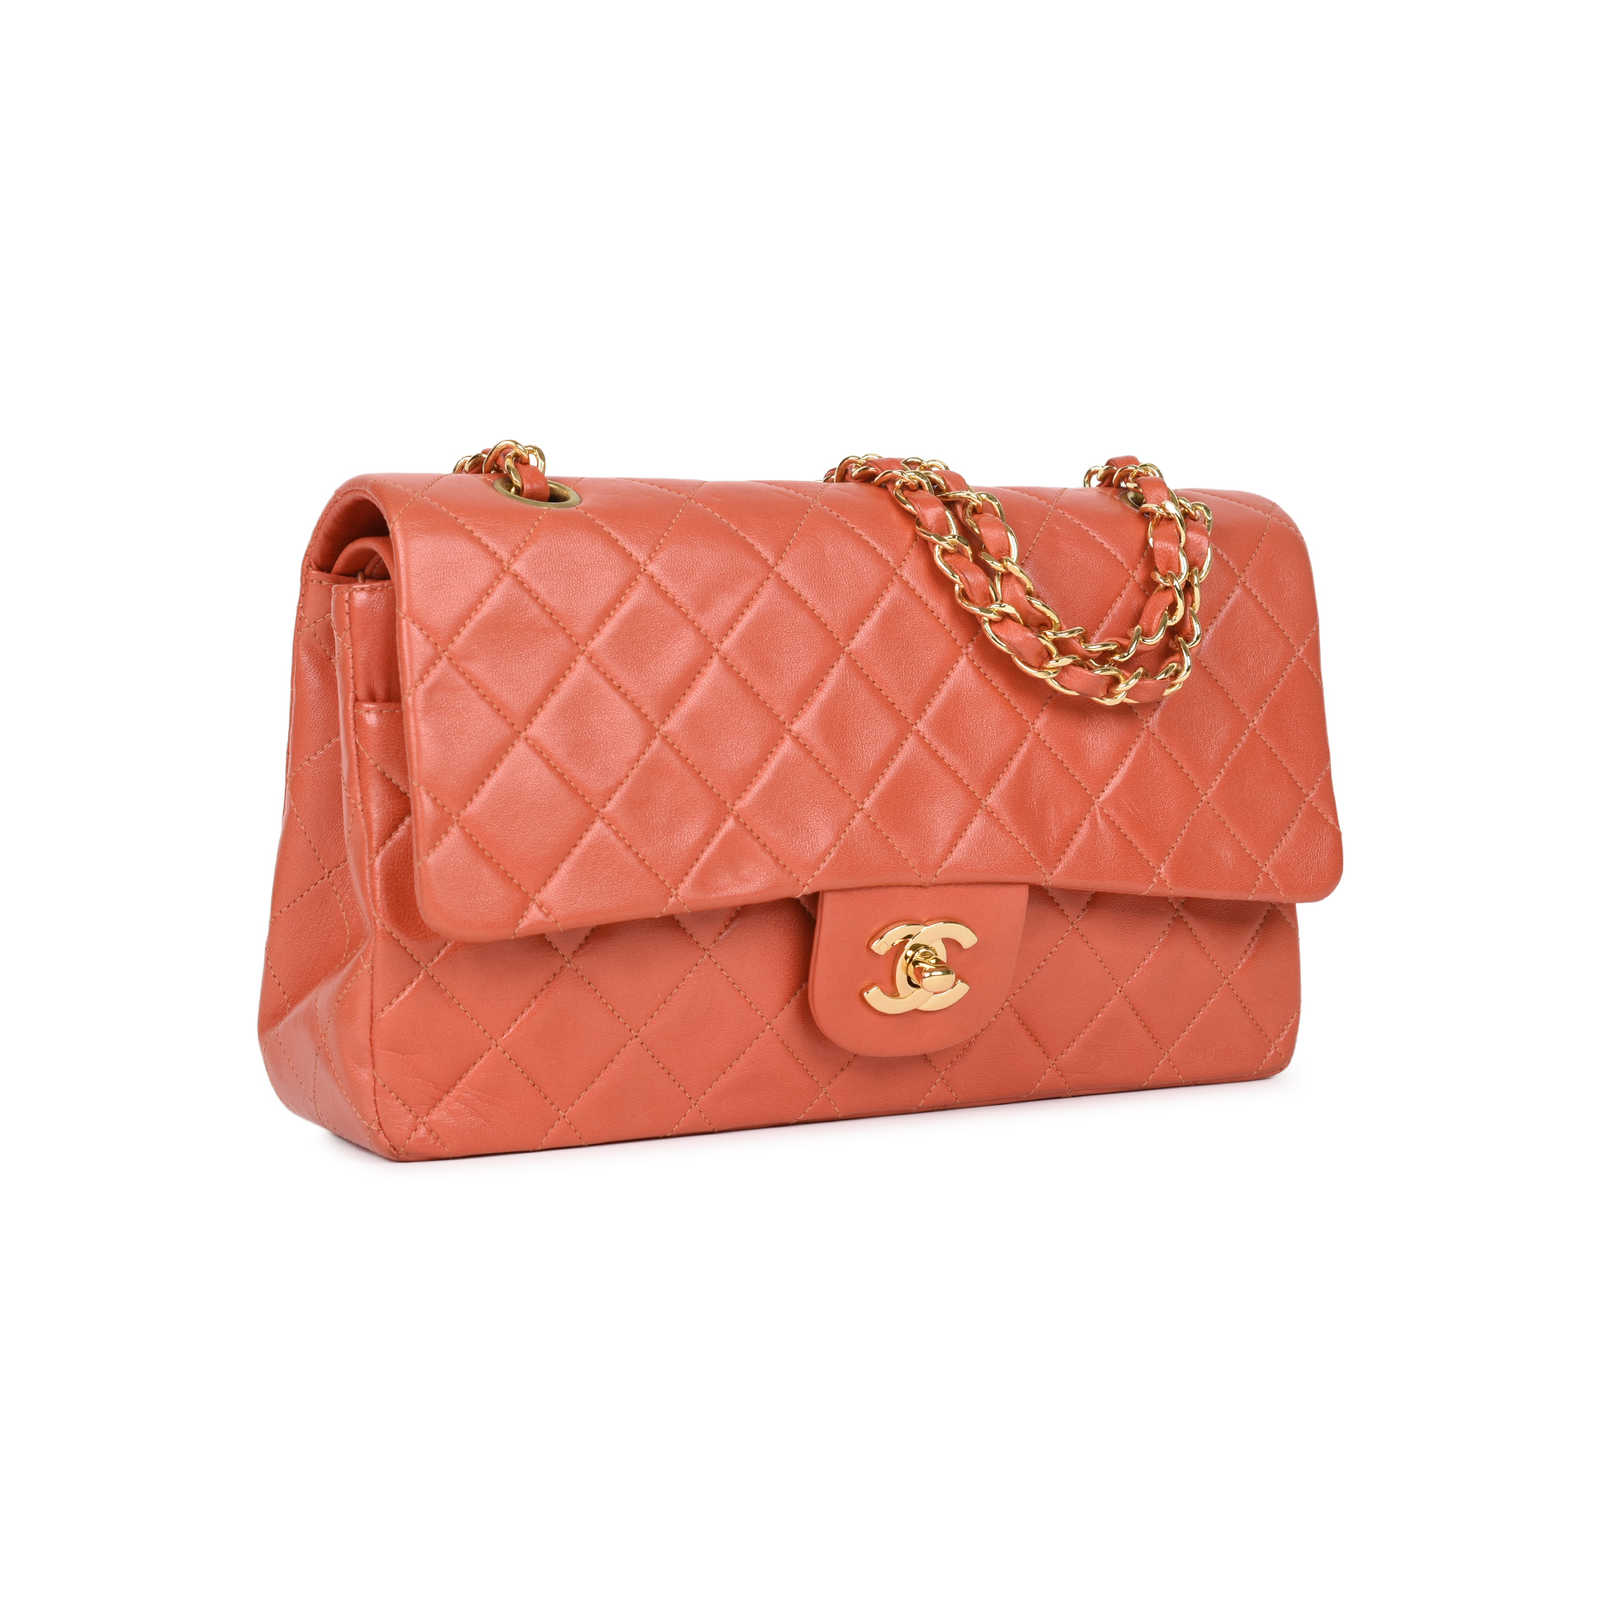 ... Authentic Pre Owned Chanel Coral Medium Classic Flap (PSS-051-00383) ... d3c7b9bc9a8ef